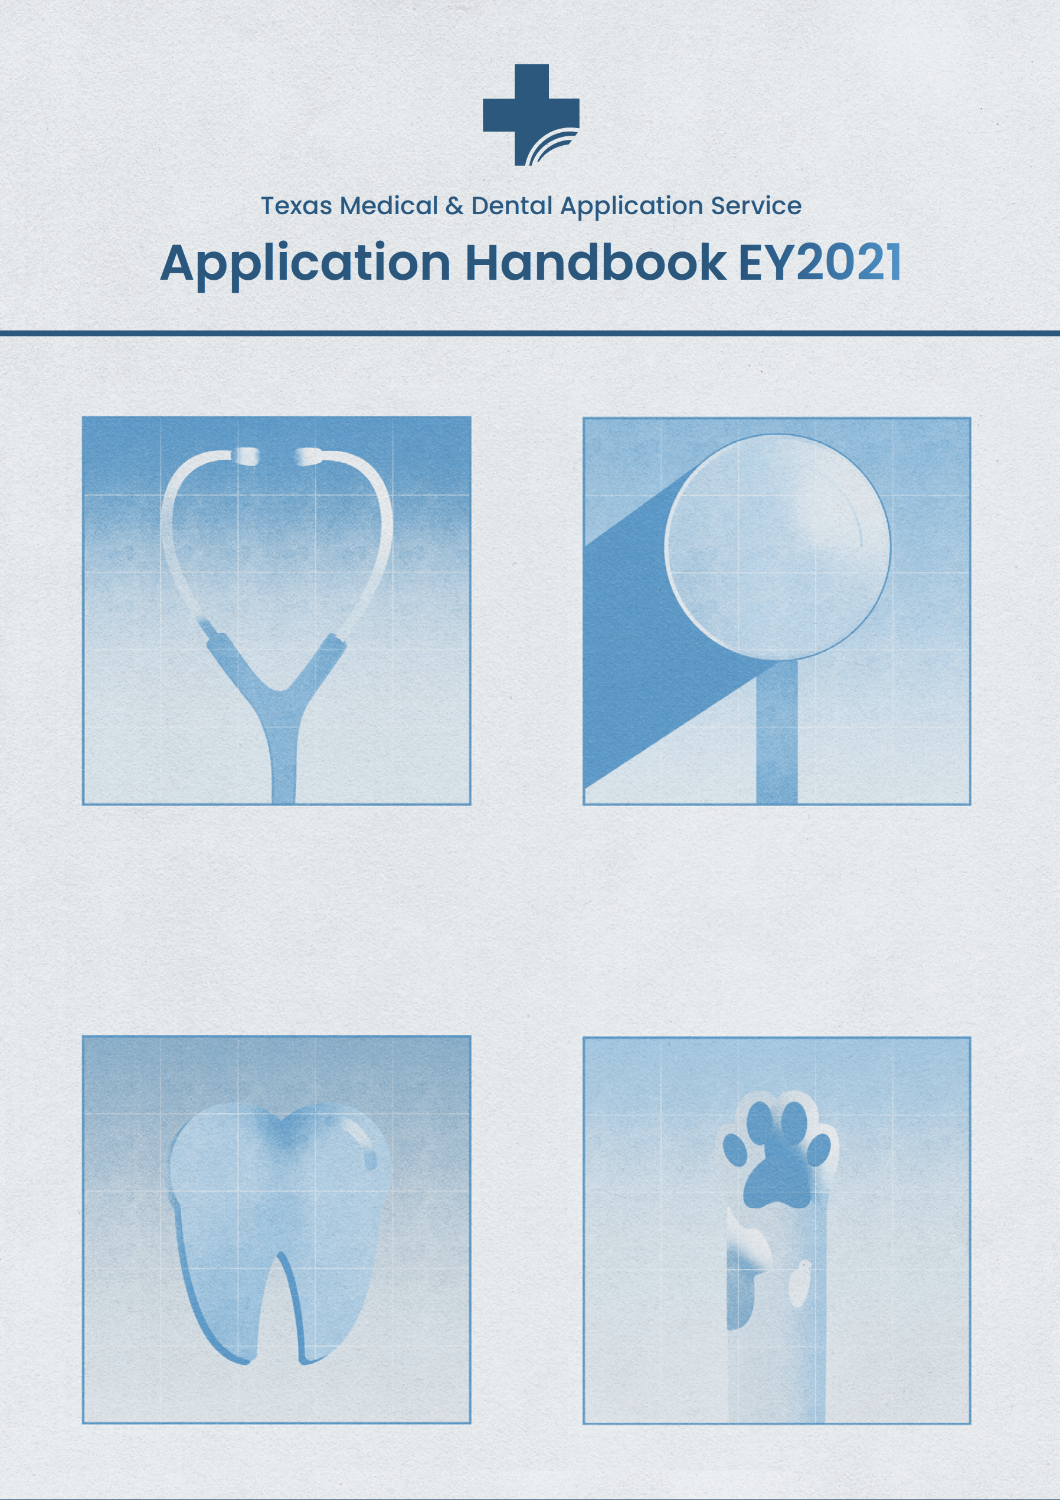 Application Handbook